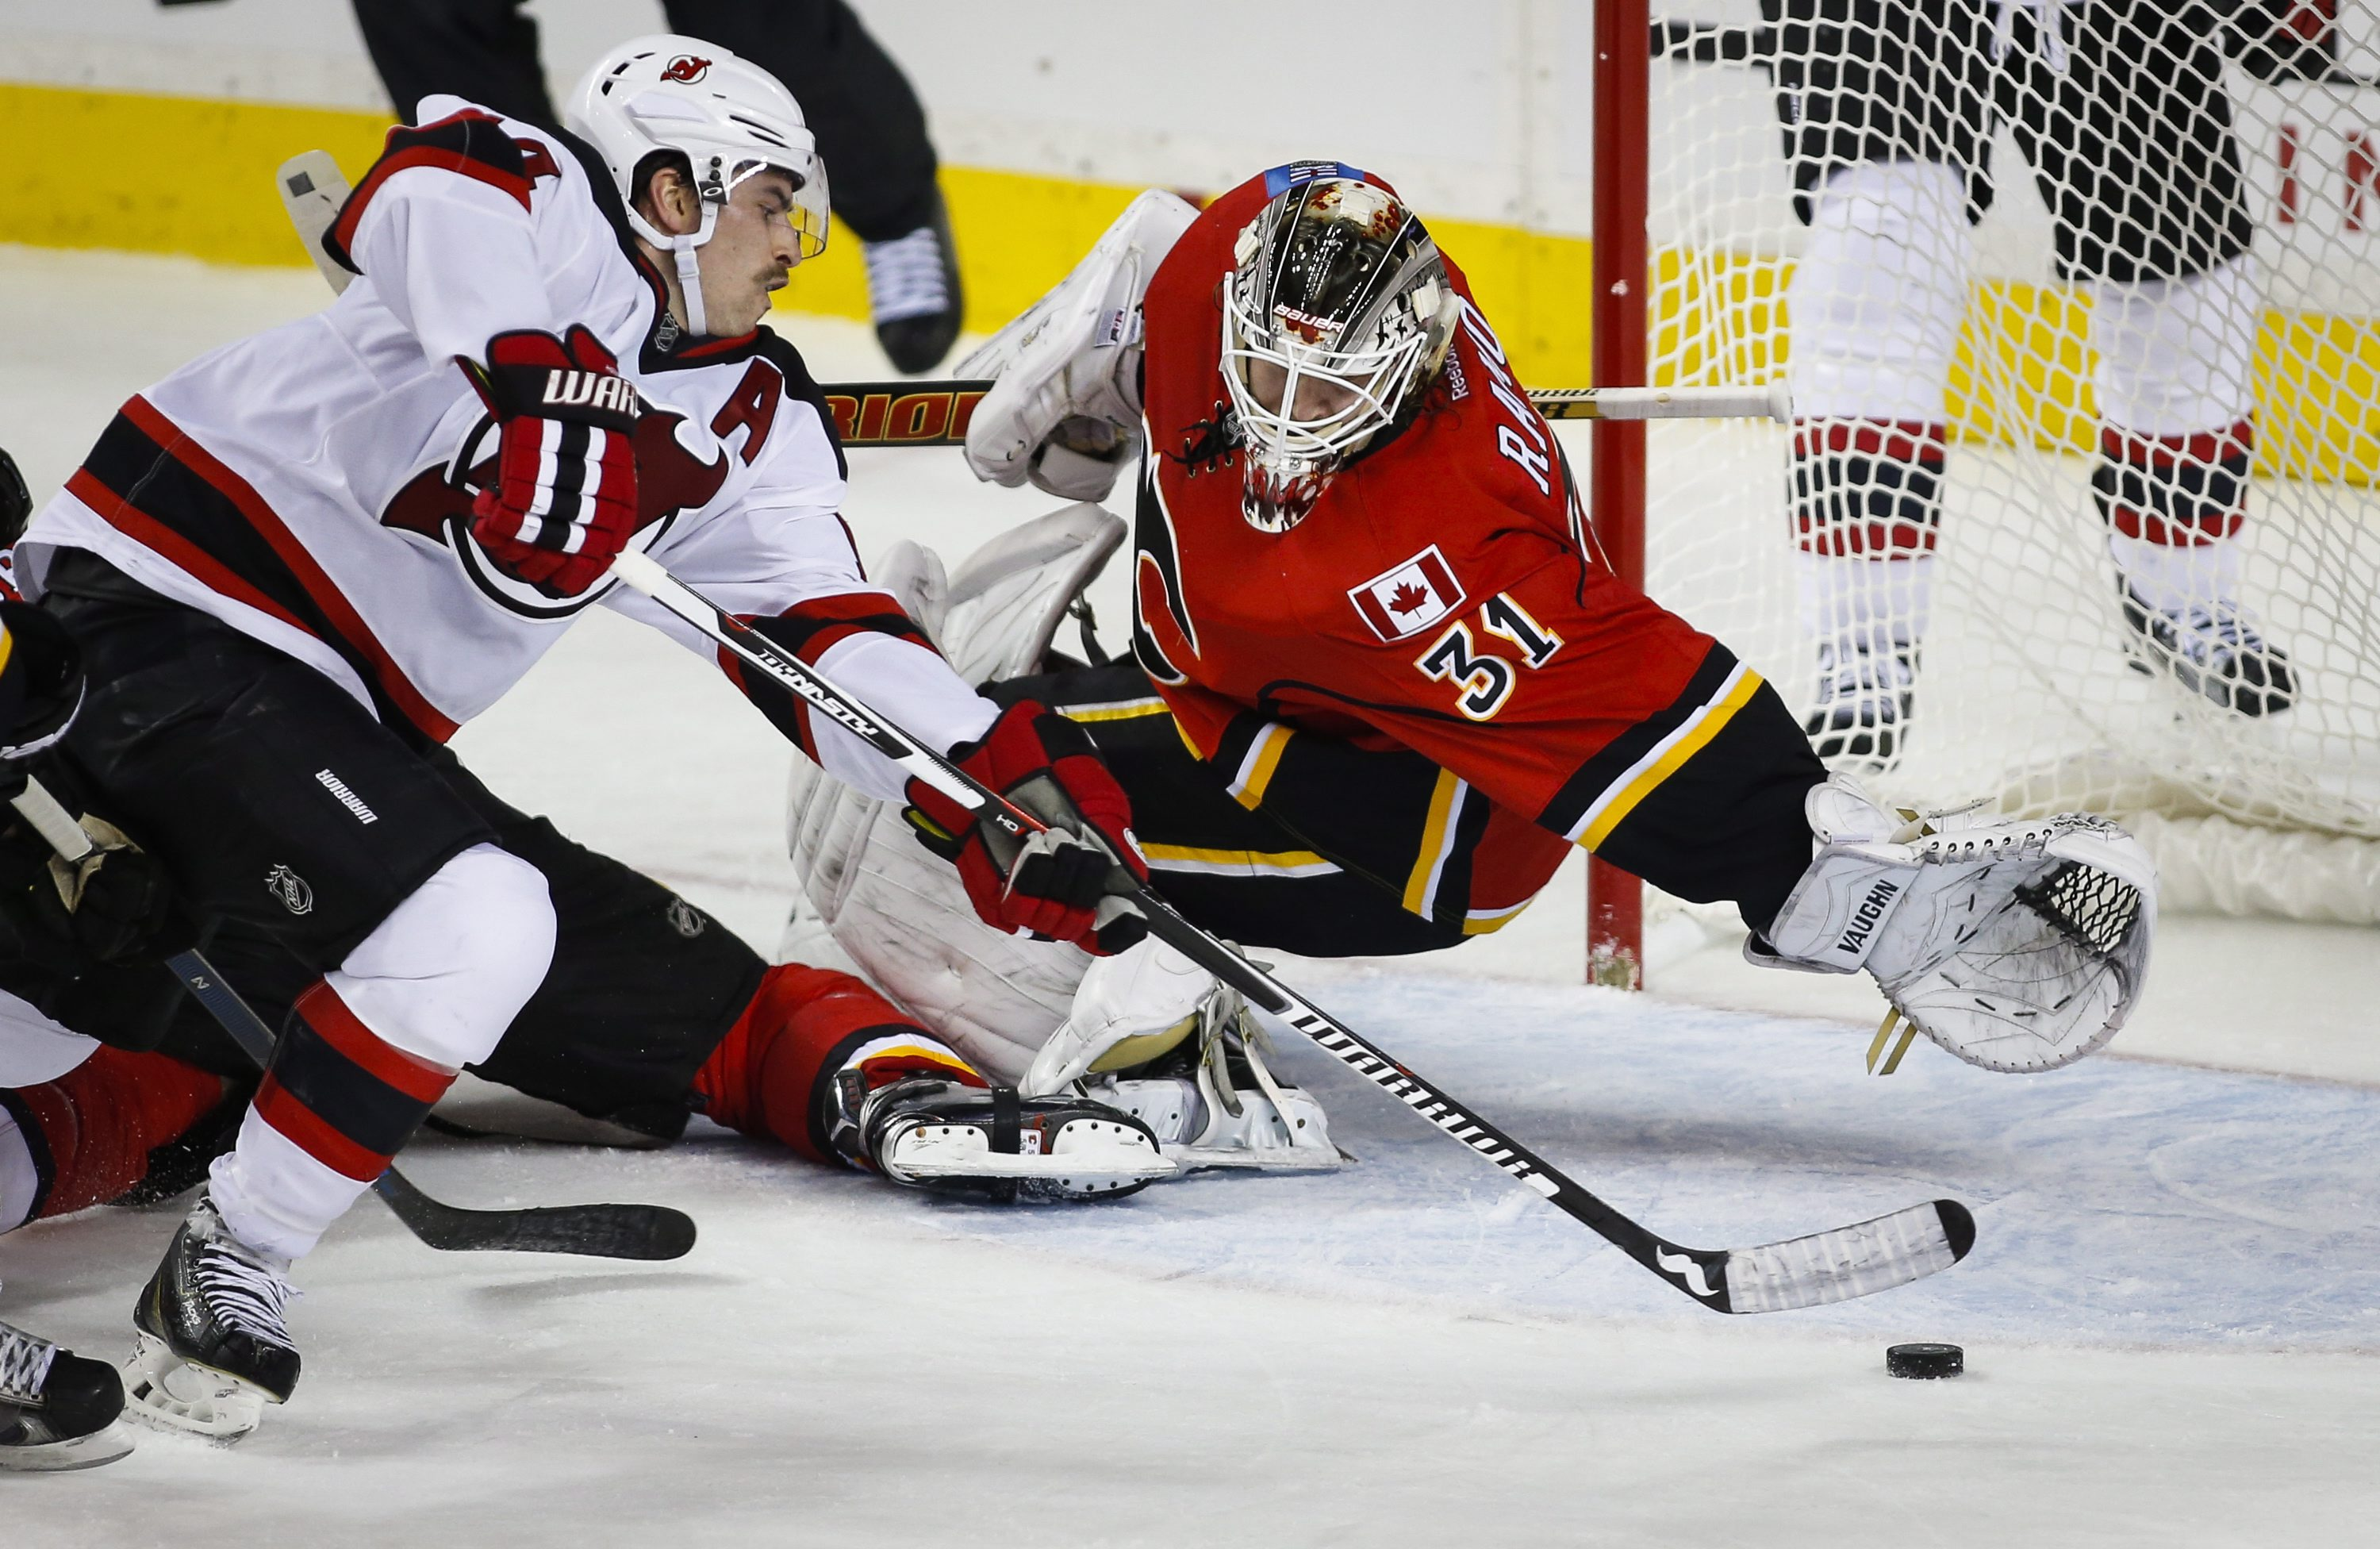 New Jersey Devils' Adam Henrique, left, dives for the puck as Calgary Flames goalie Karri Ramo, from Finland, does the same during third period NHL hockey action in Calgary, Alberta, on Tuesday, Nov. 17, 2015. (Jeff McIntosh/The Canadian Press via AP)